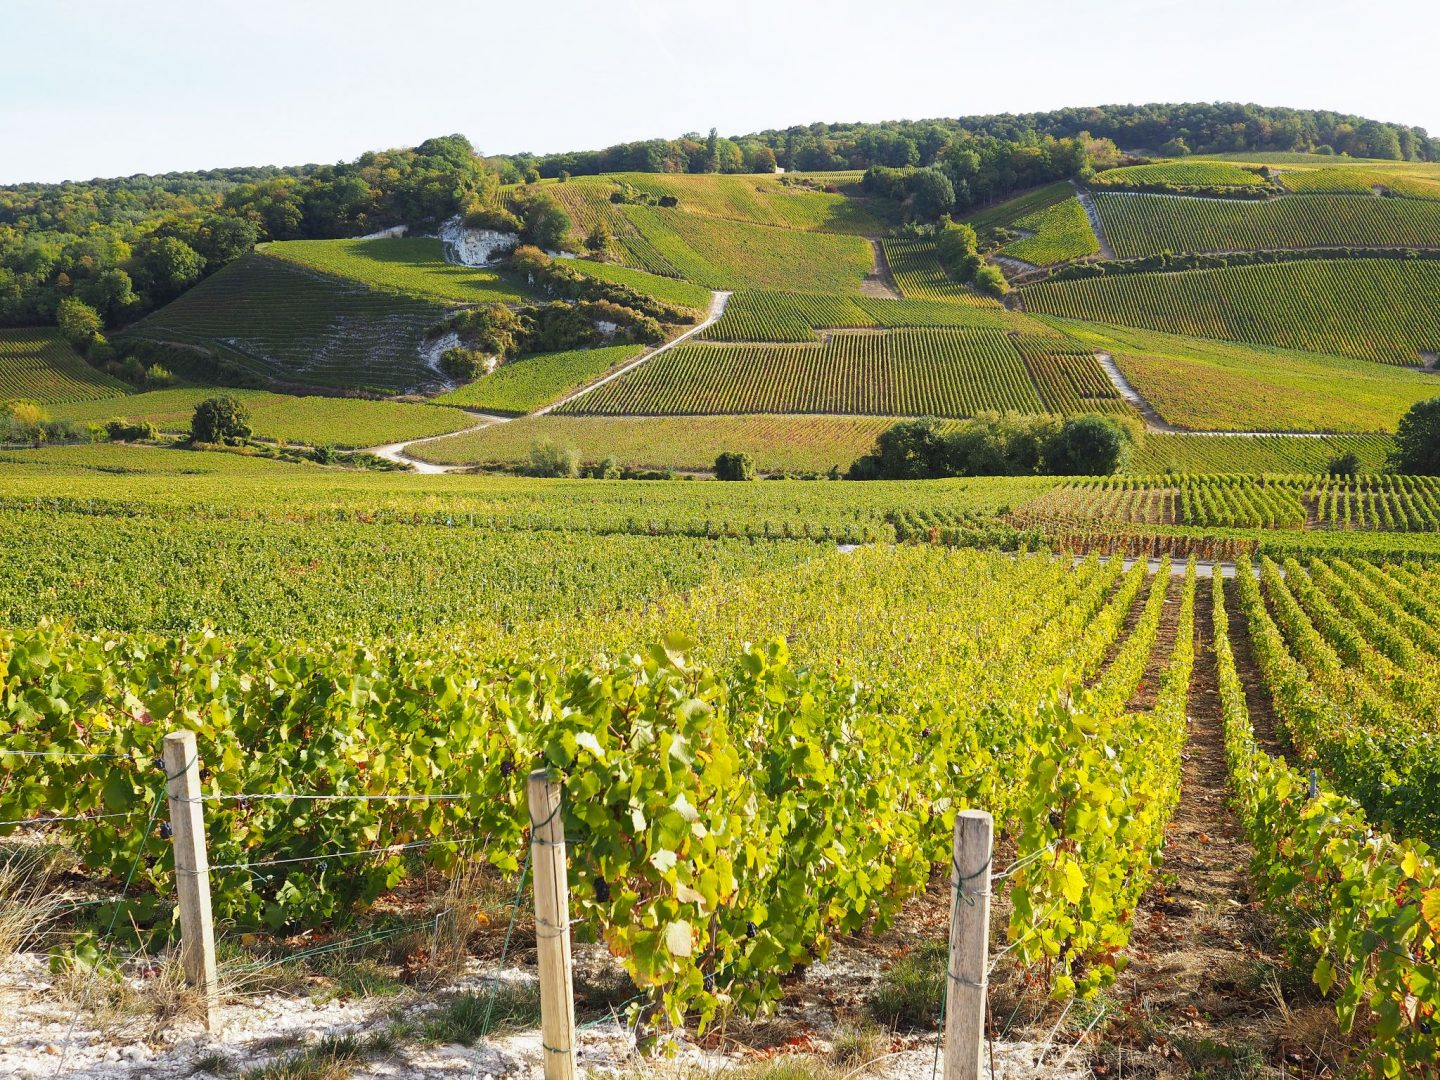 Grapes & Vineyards of Champagne Region